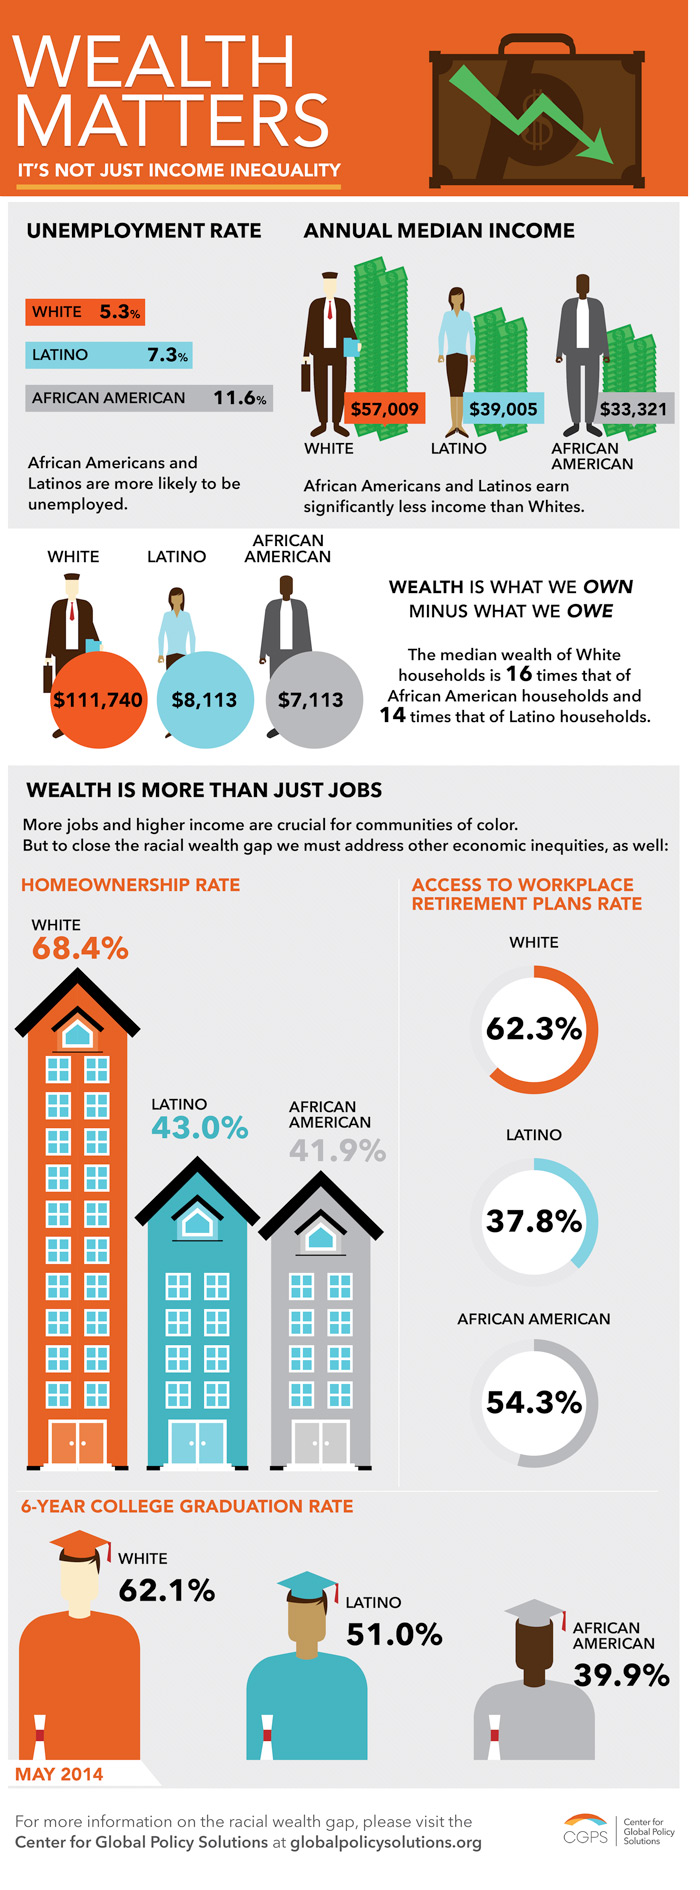 Wealth Matters -- racial equity gap (Infographic by Andy Fountain / Center for Global Policy Solutions)